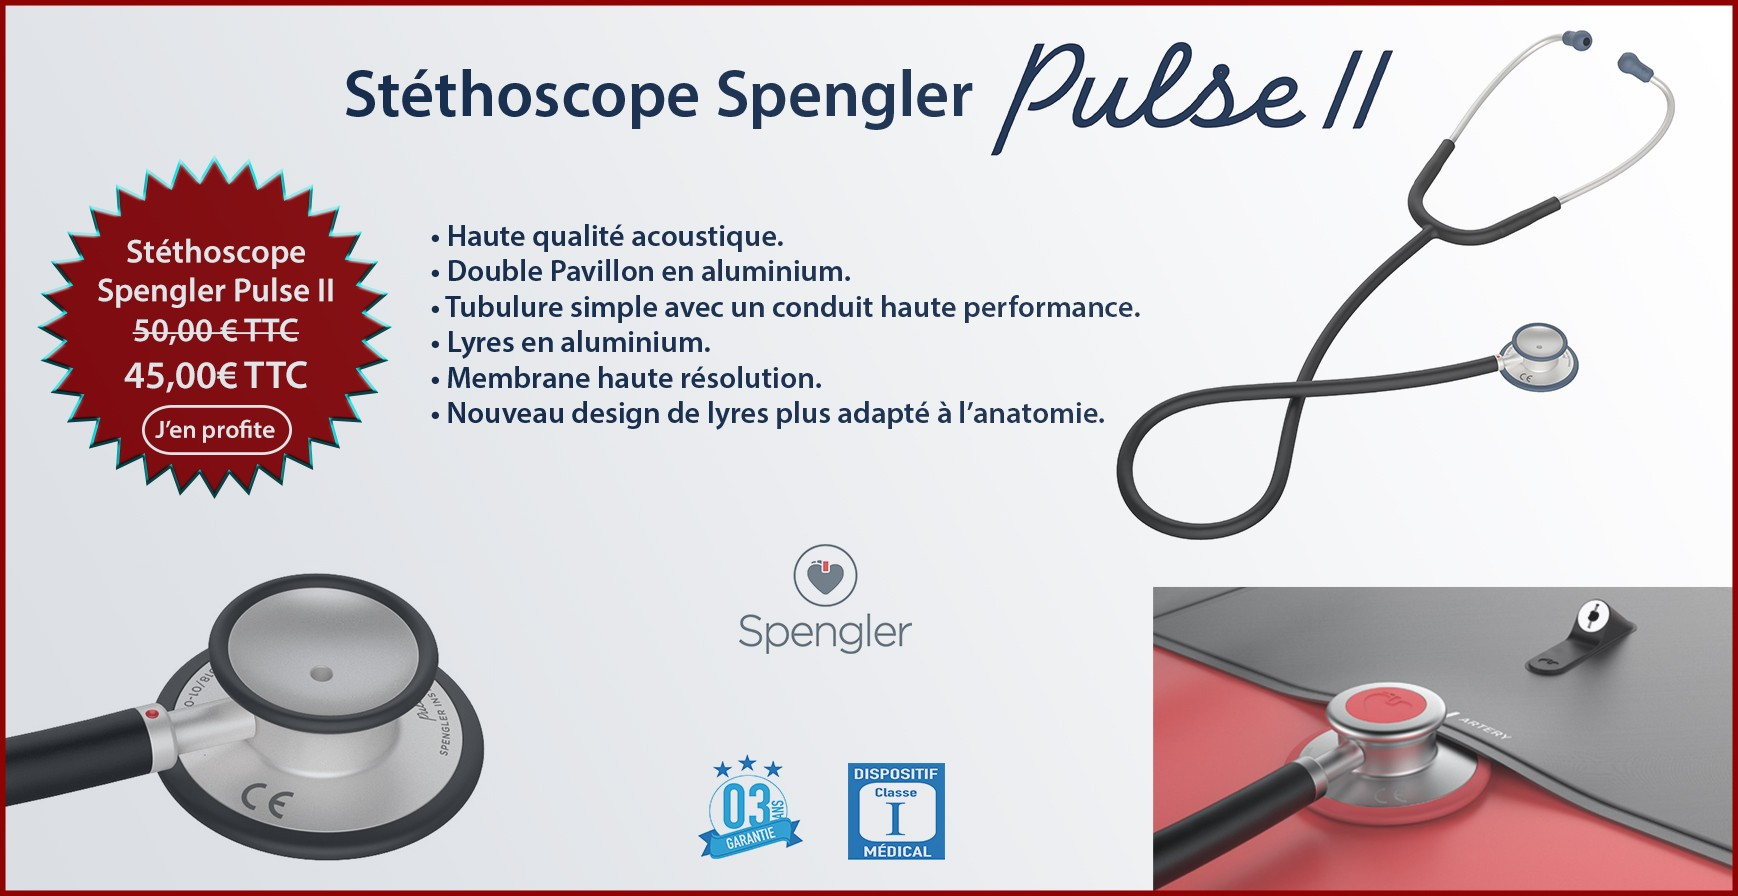 Stéthoscope Spengler Pulse II